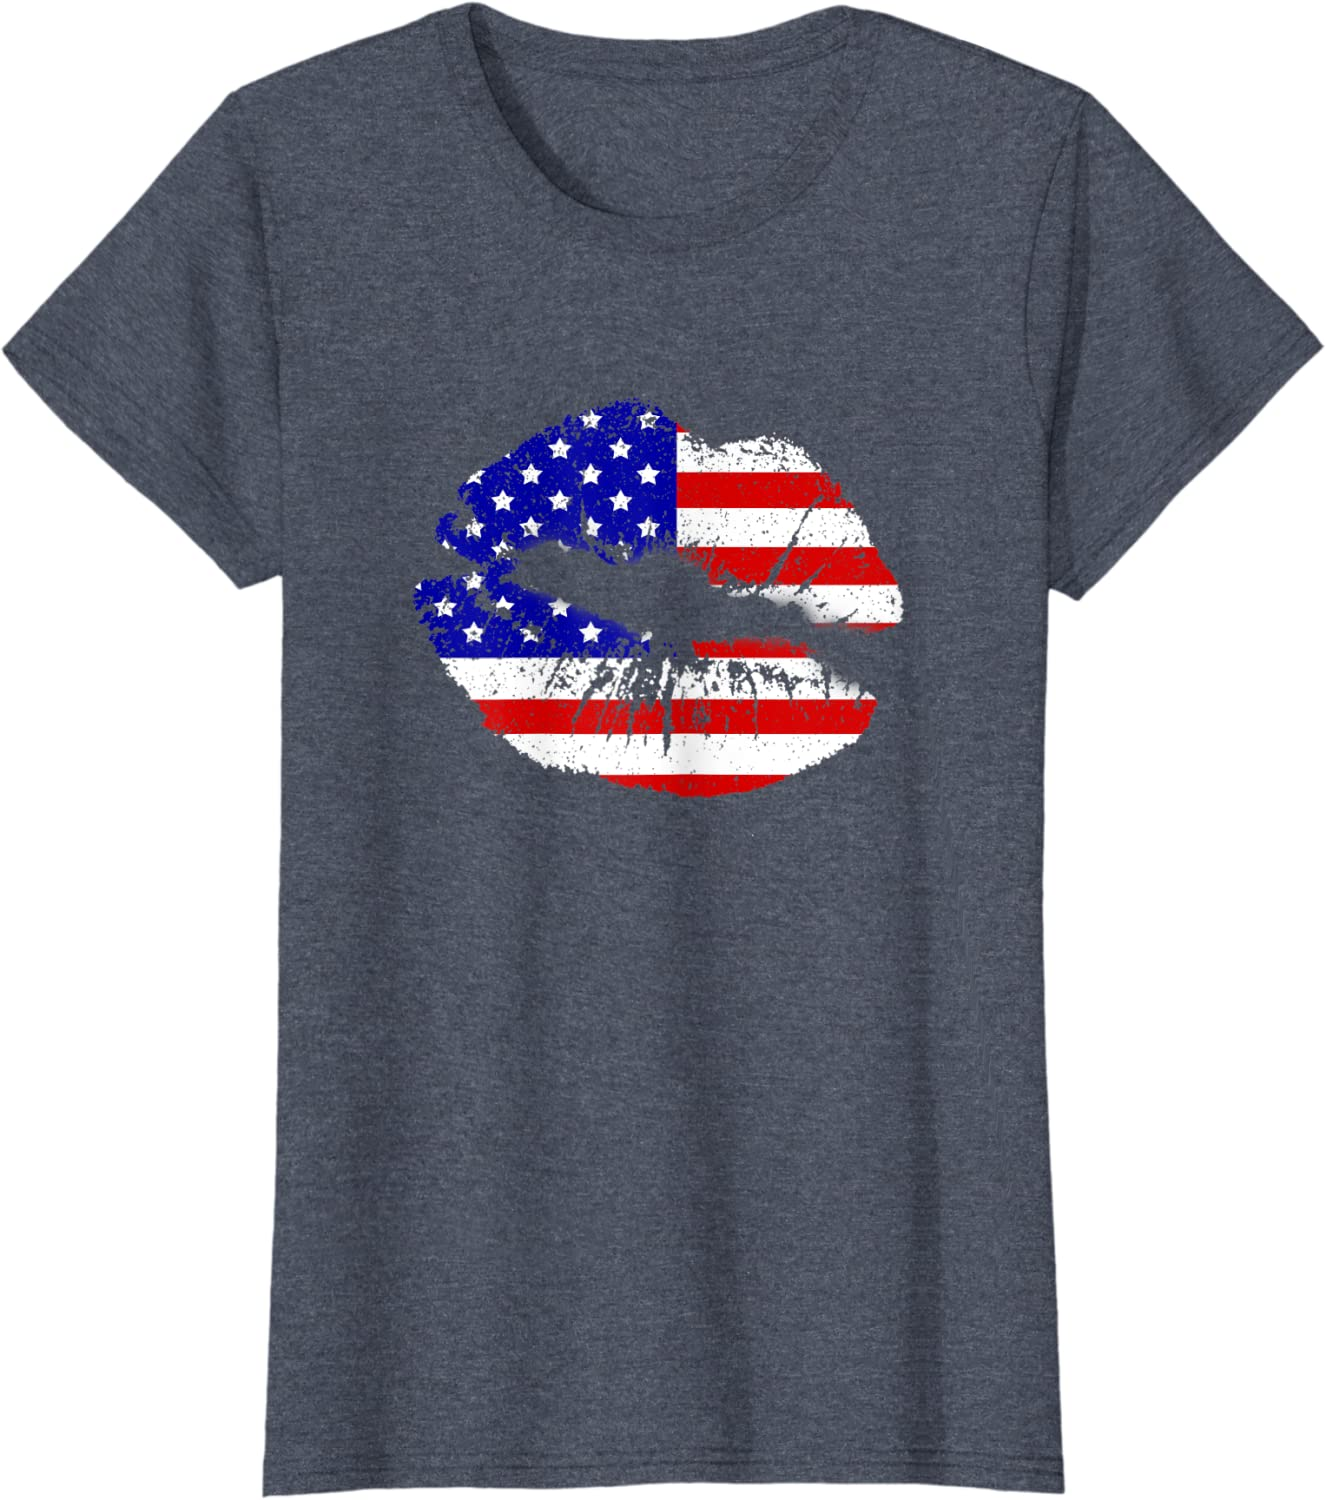 Women American lips  4th of july S,M,L,XL,XXL,XXXLpersonalized gift independence  tshirt for women graphic teesready to ship